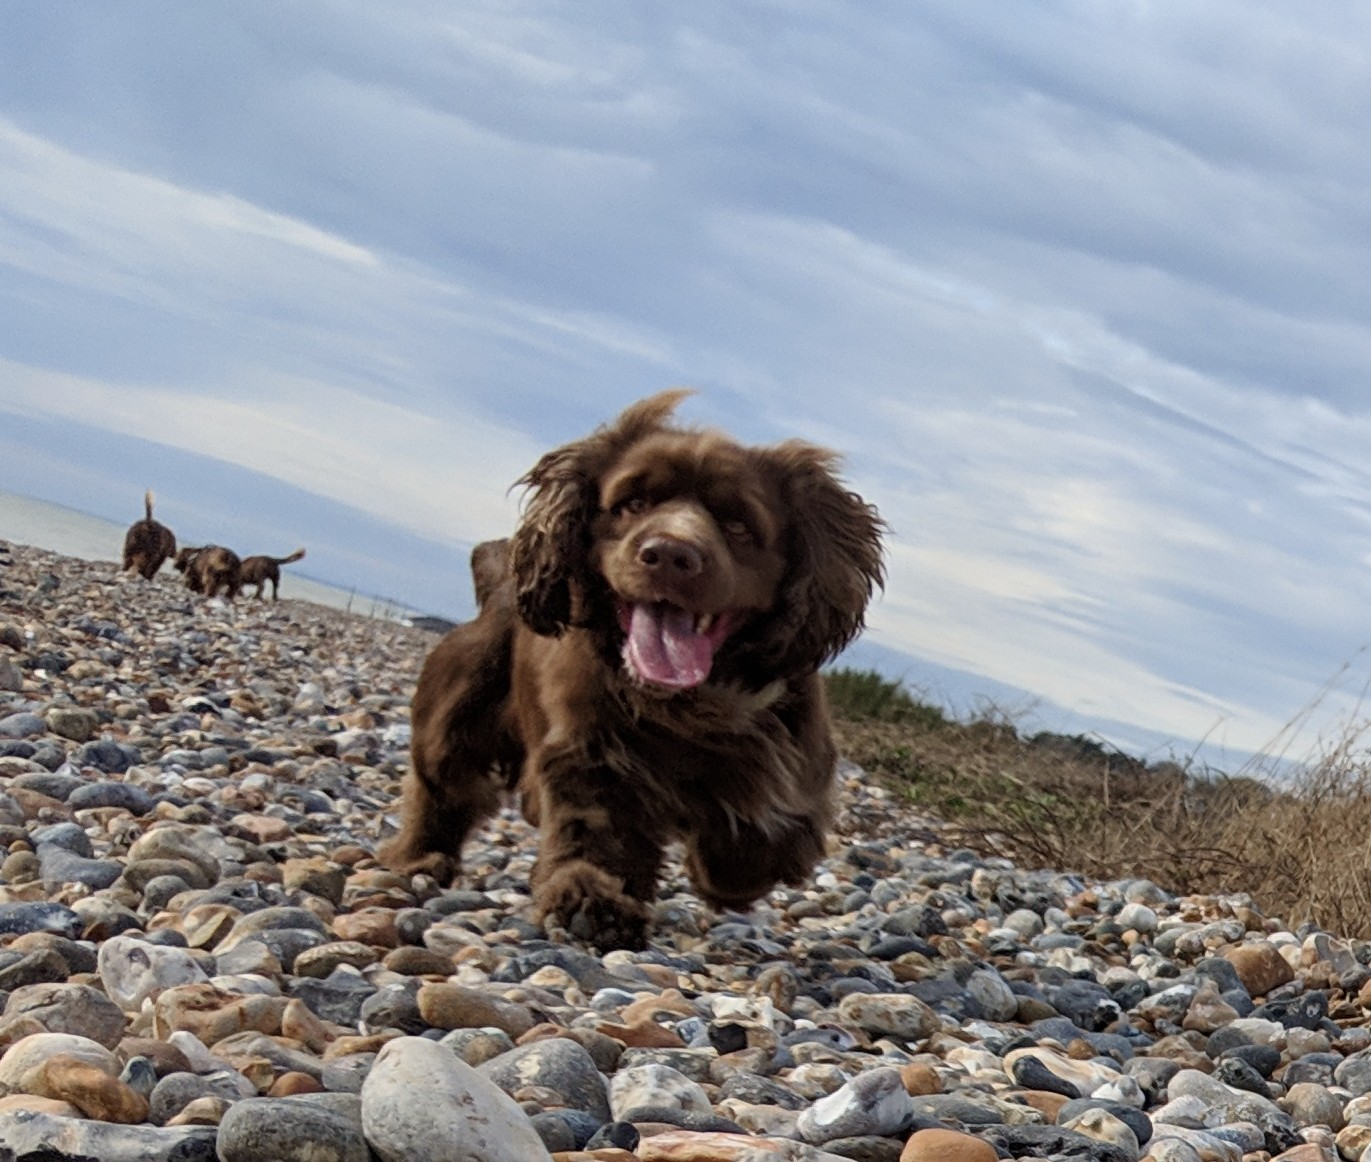 Sussex Spaniel mid jump with funny facial expression.